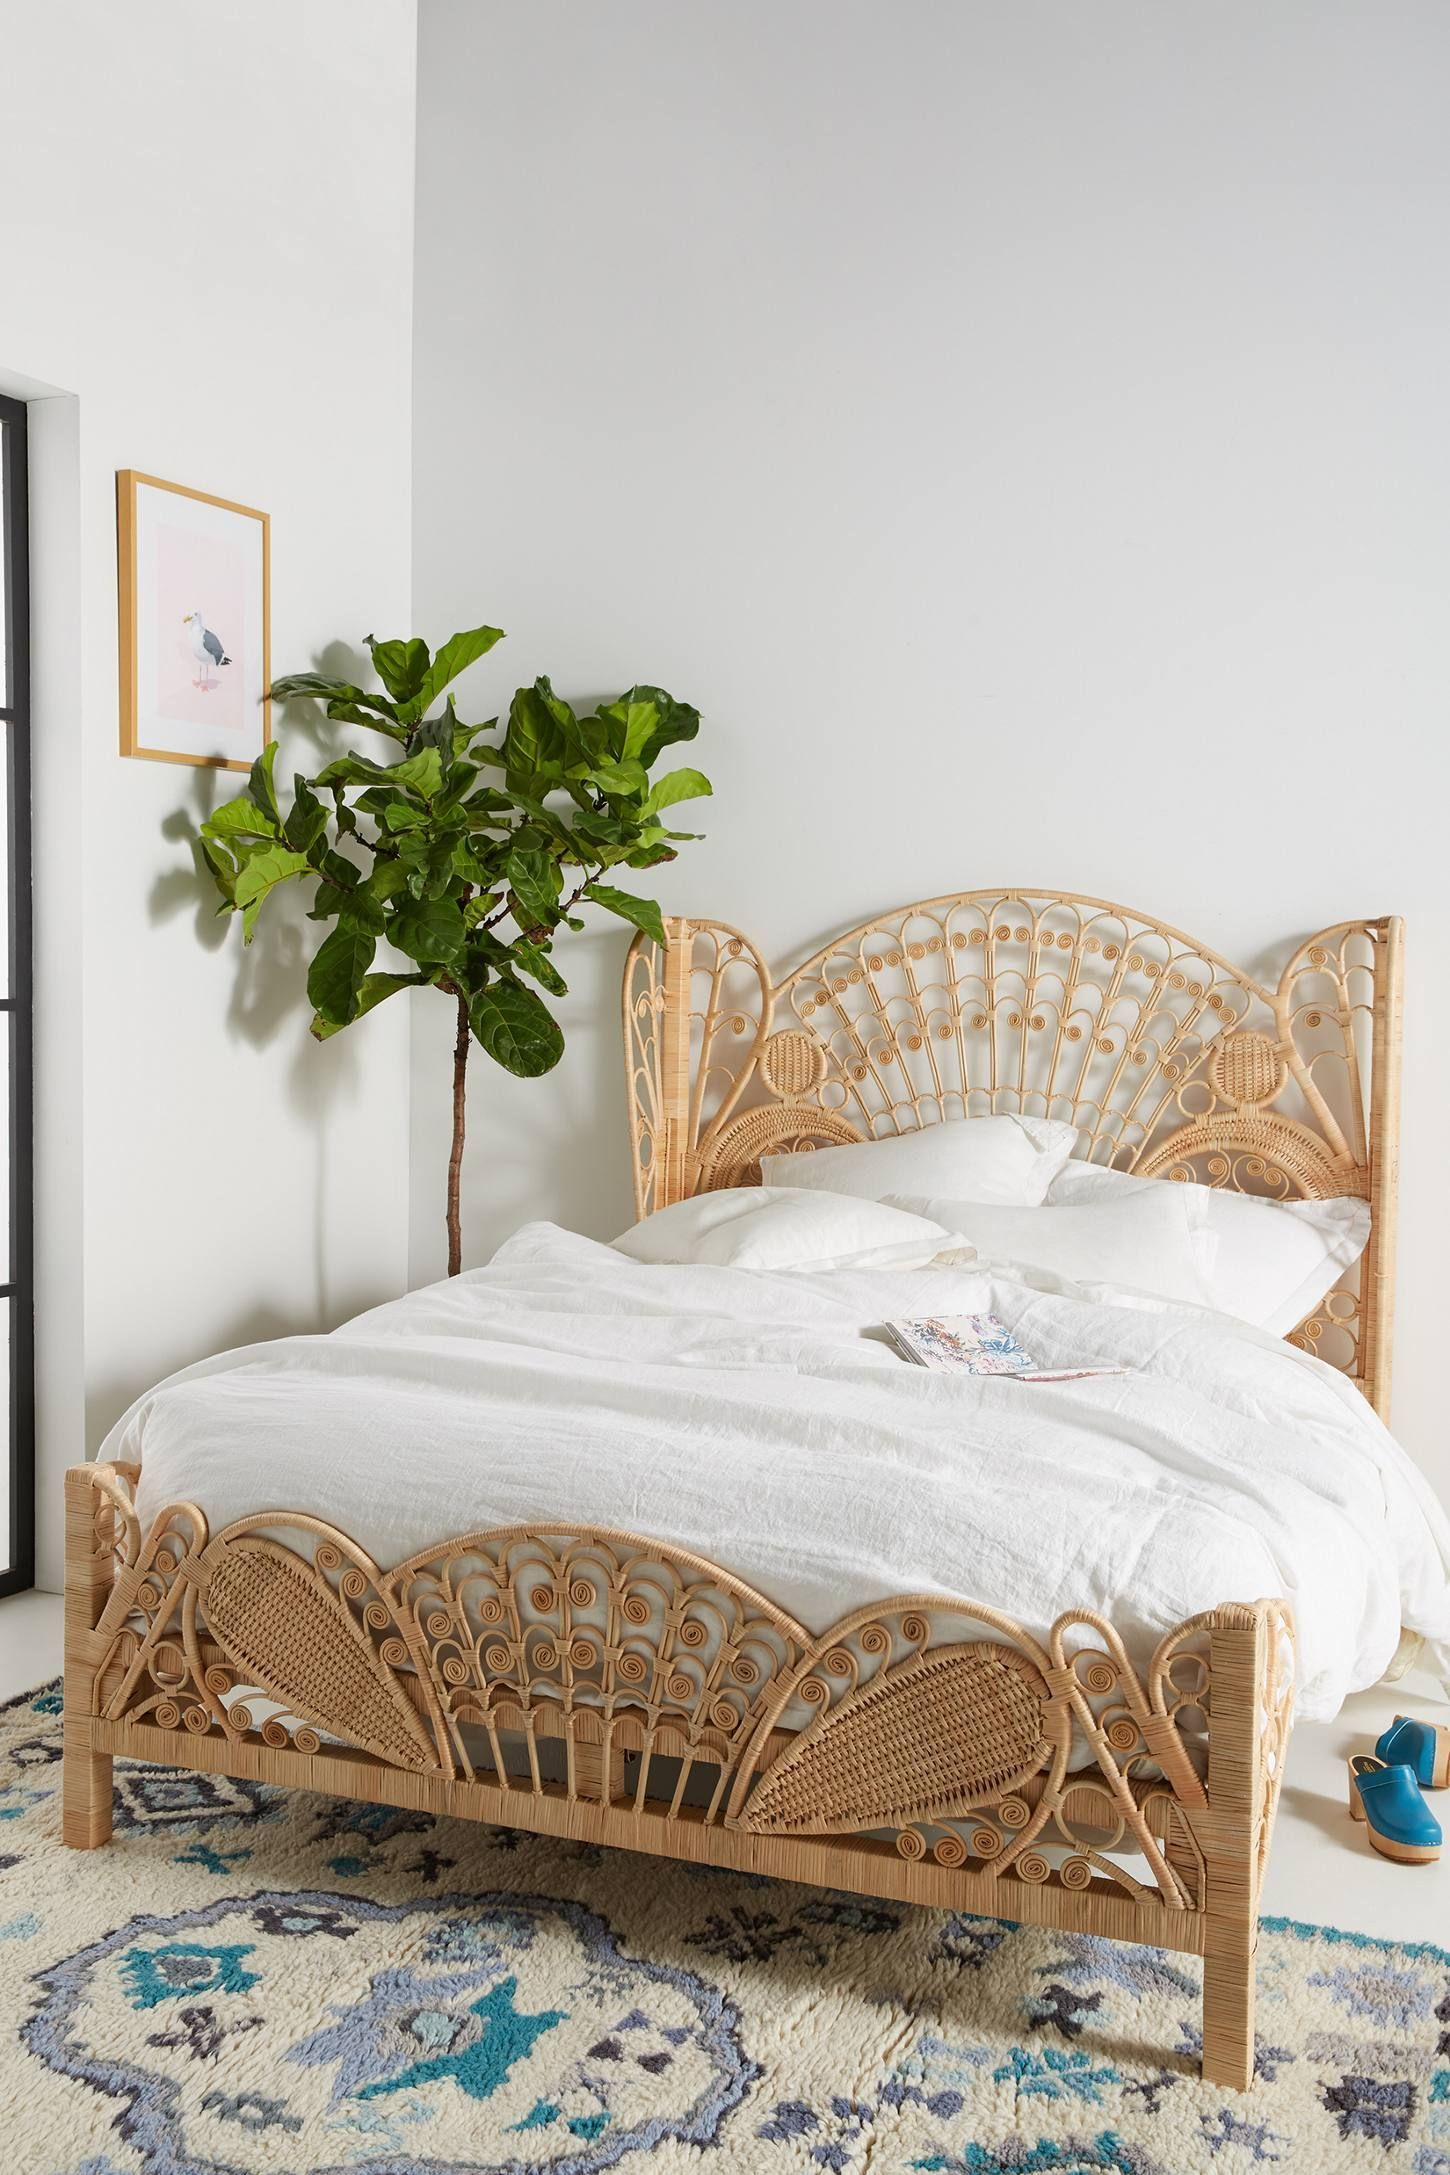 Shop the Kinsella Rattan Bed and more Anthropologie at